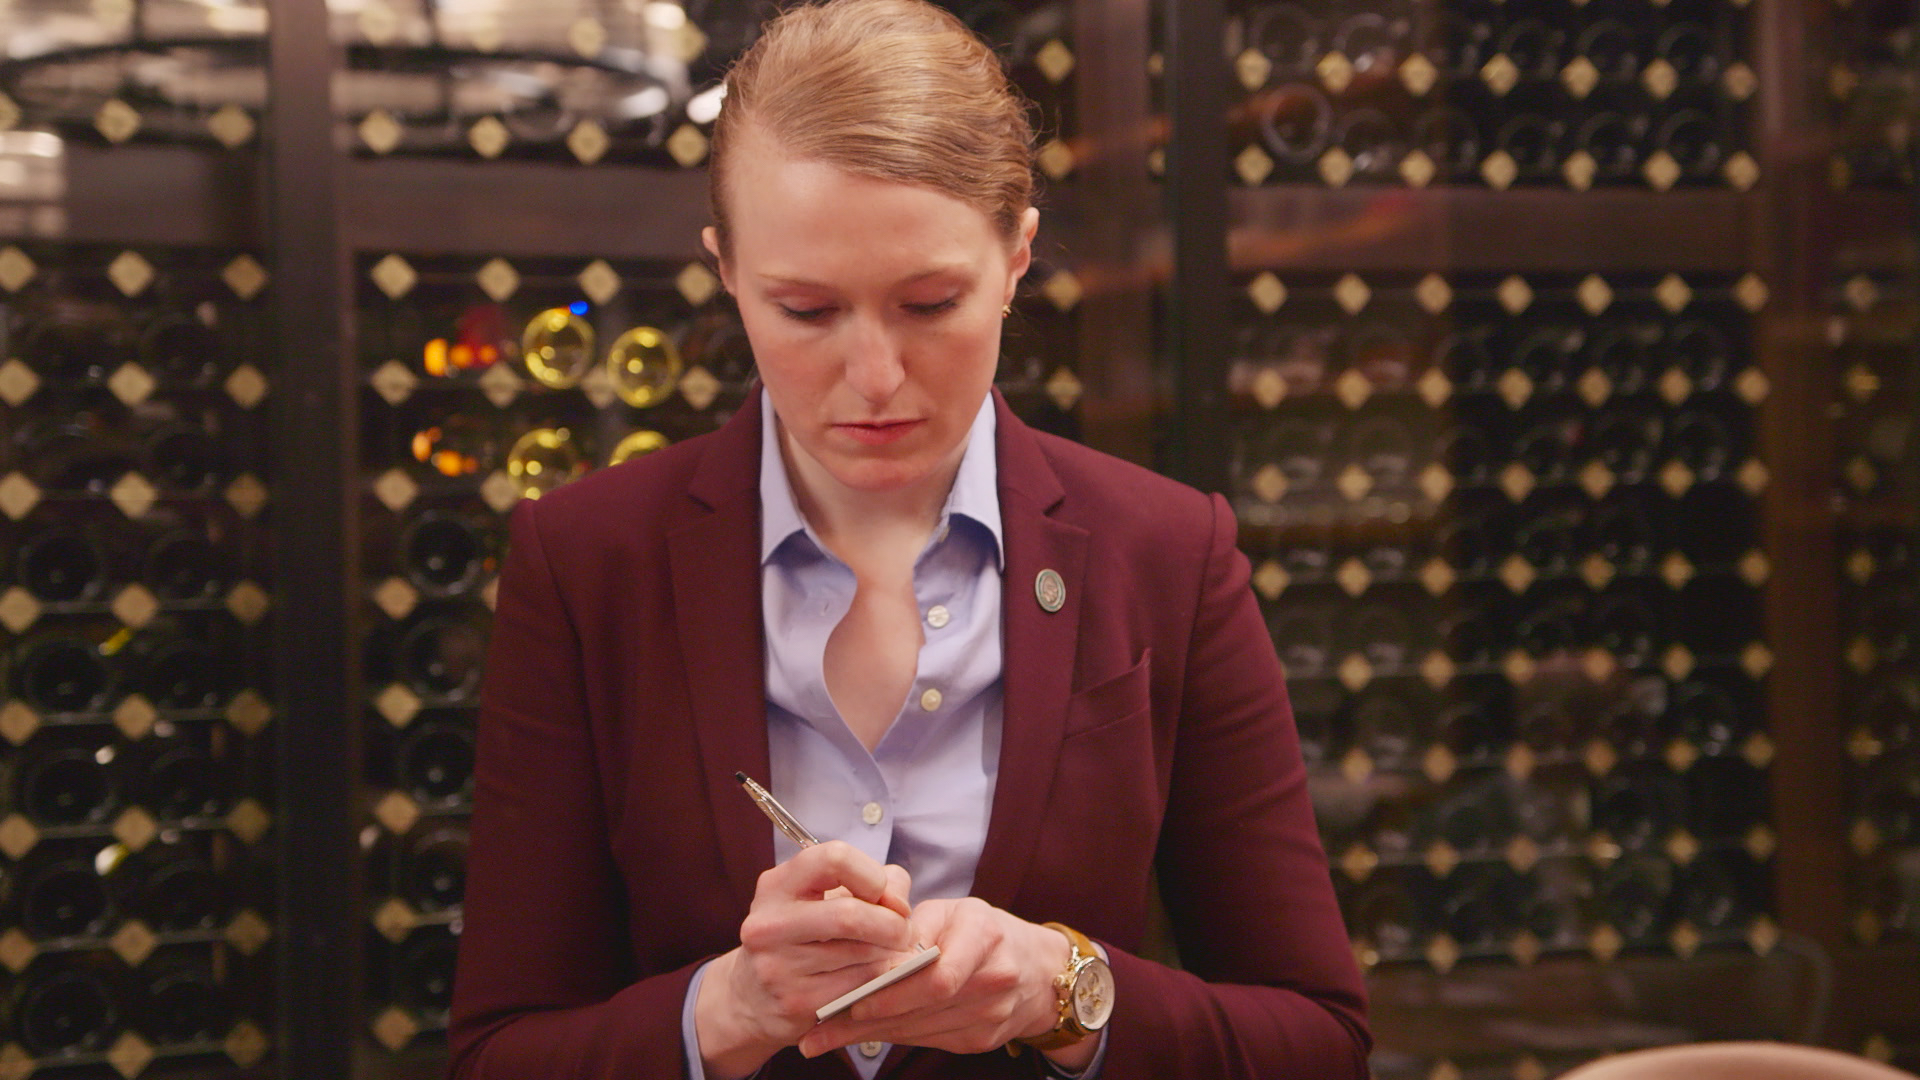 Jane Lopes, wine sommelier from Uncorked